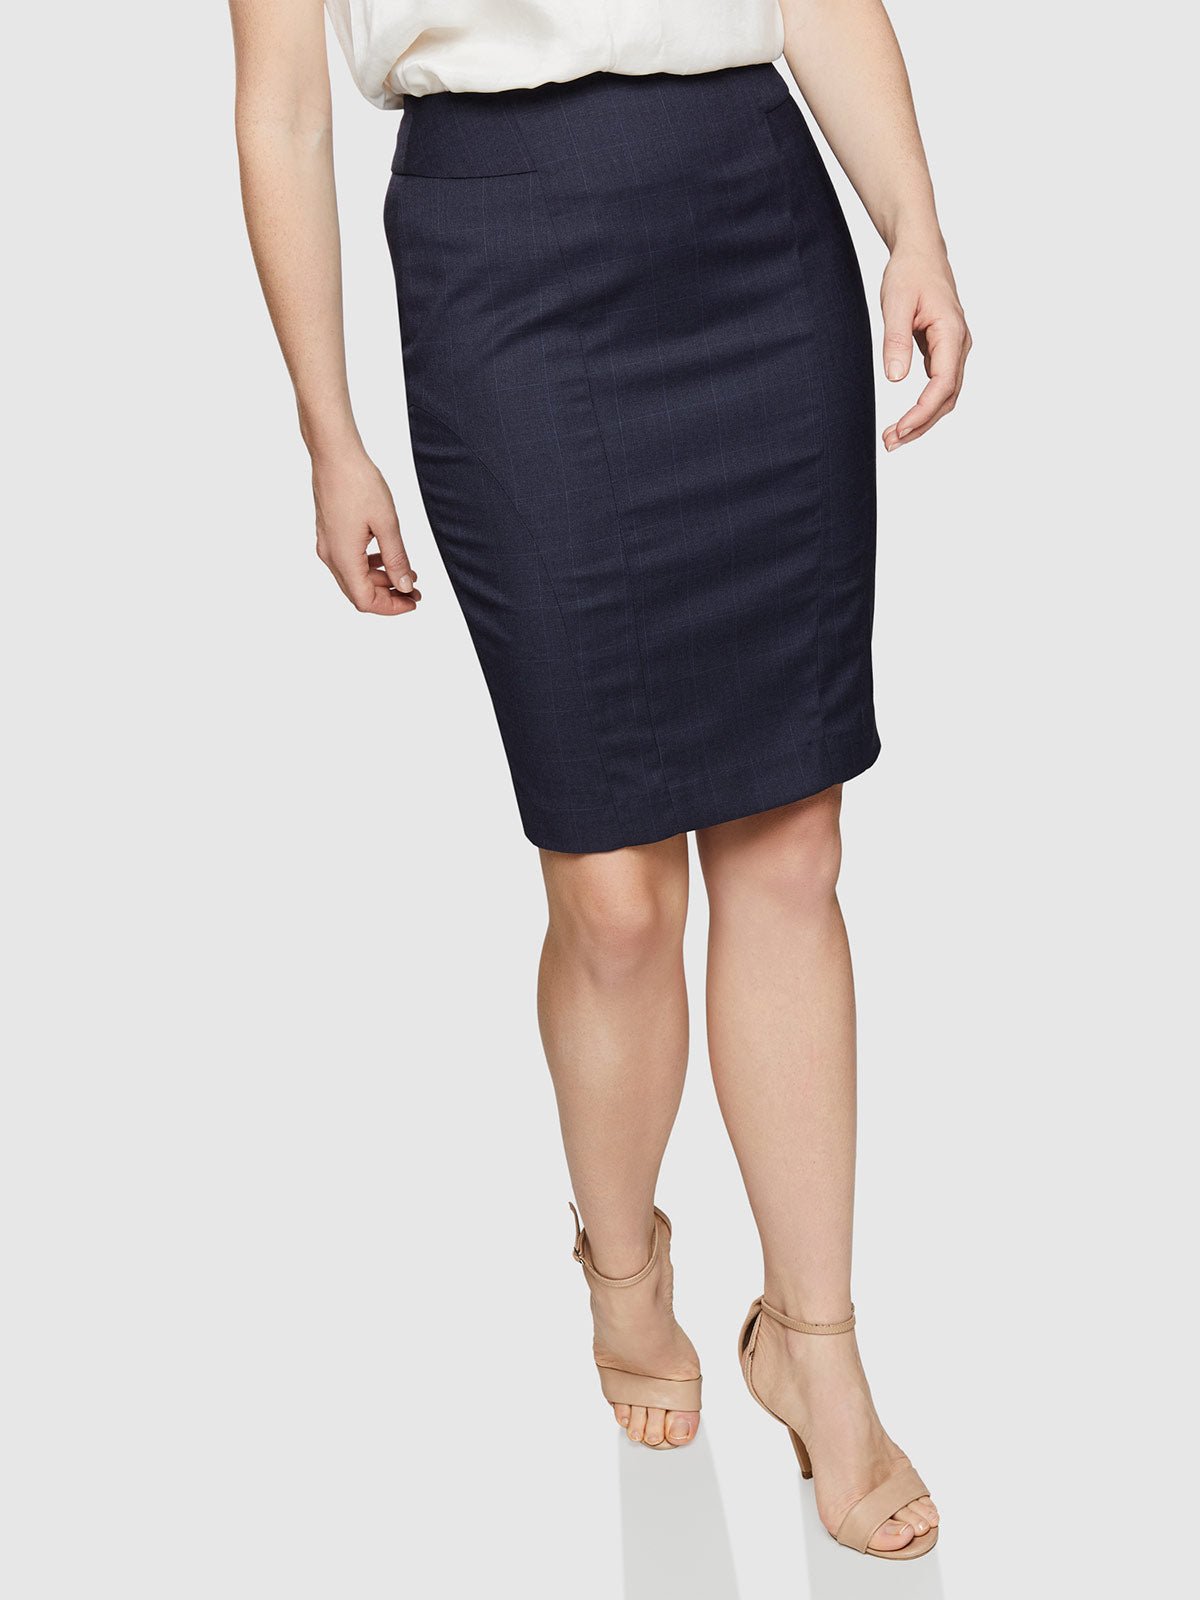 MONROE SUIT SKIRT DARK NAVY